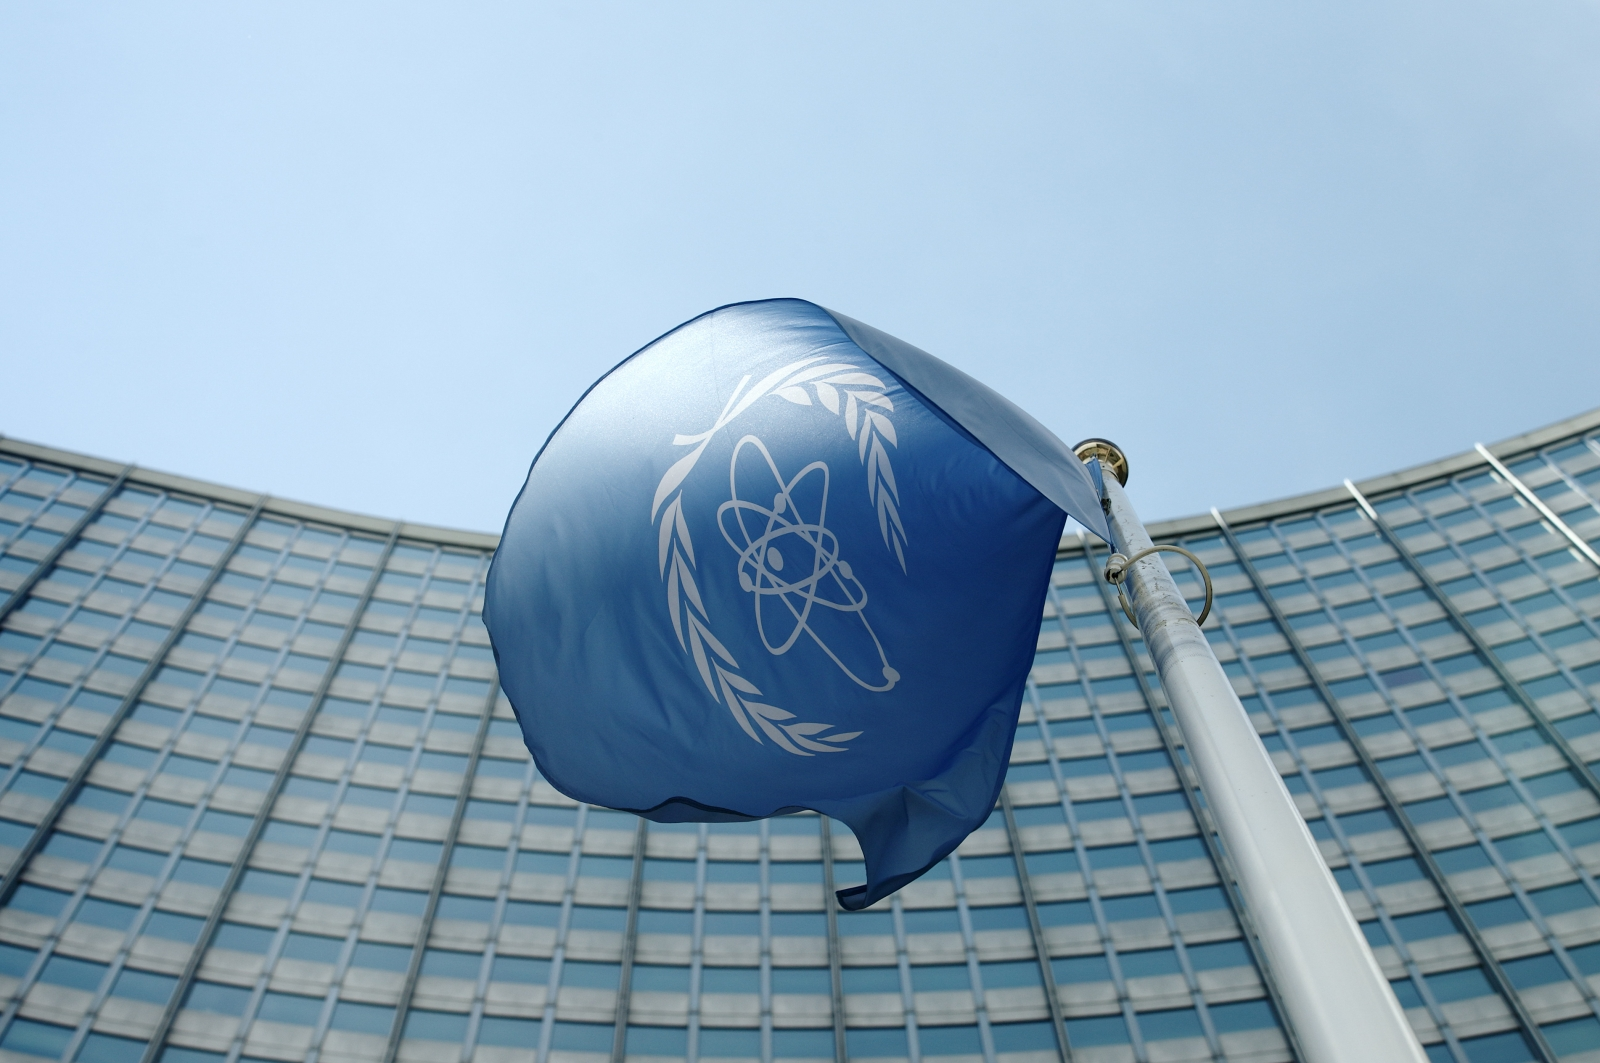 IAEA Iran nuclear agreement